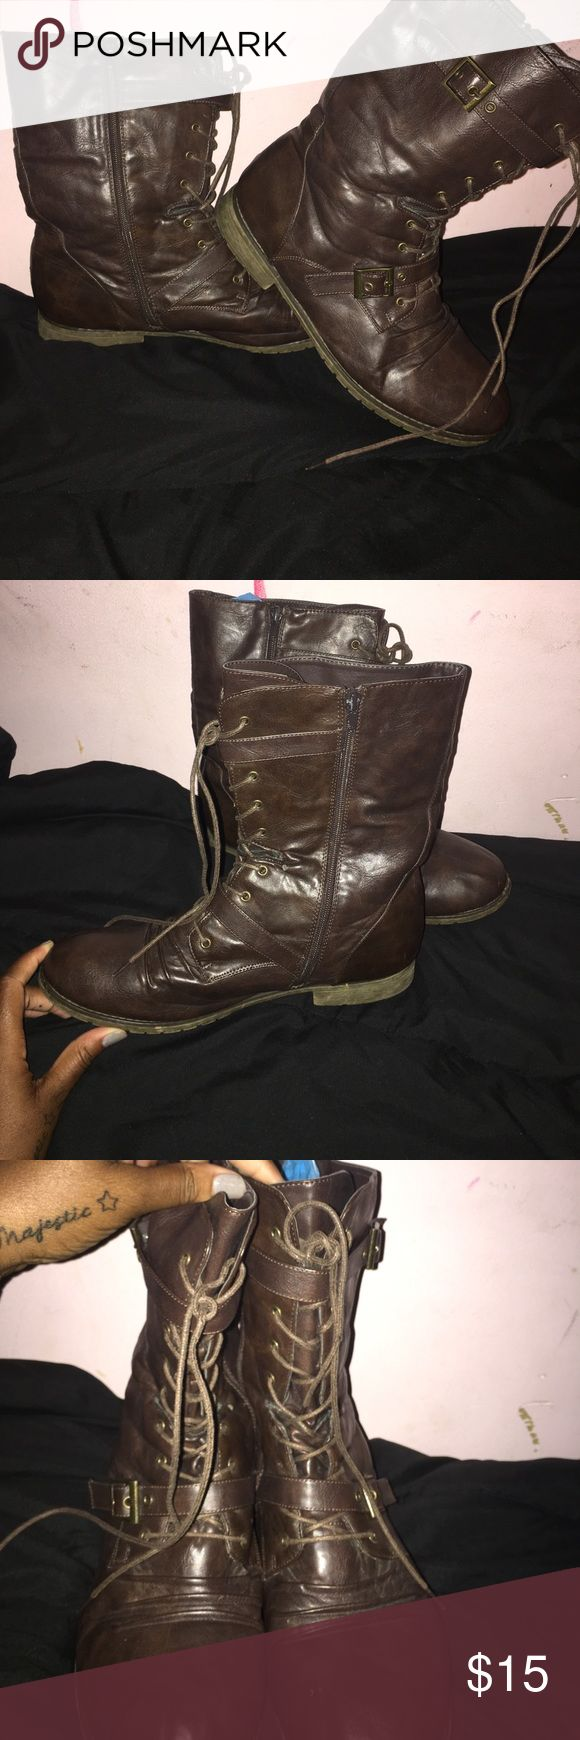 Women's combat boots size 12W brown Size 12 W women's combat boots barely worn like new no call Shoes Combat & Moto Boots